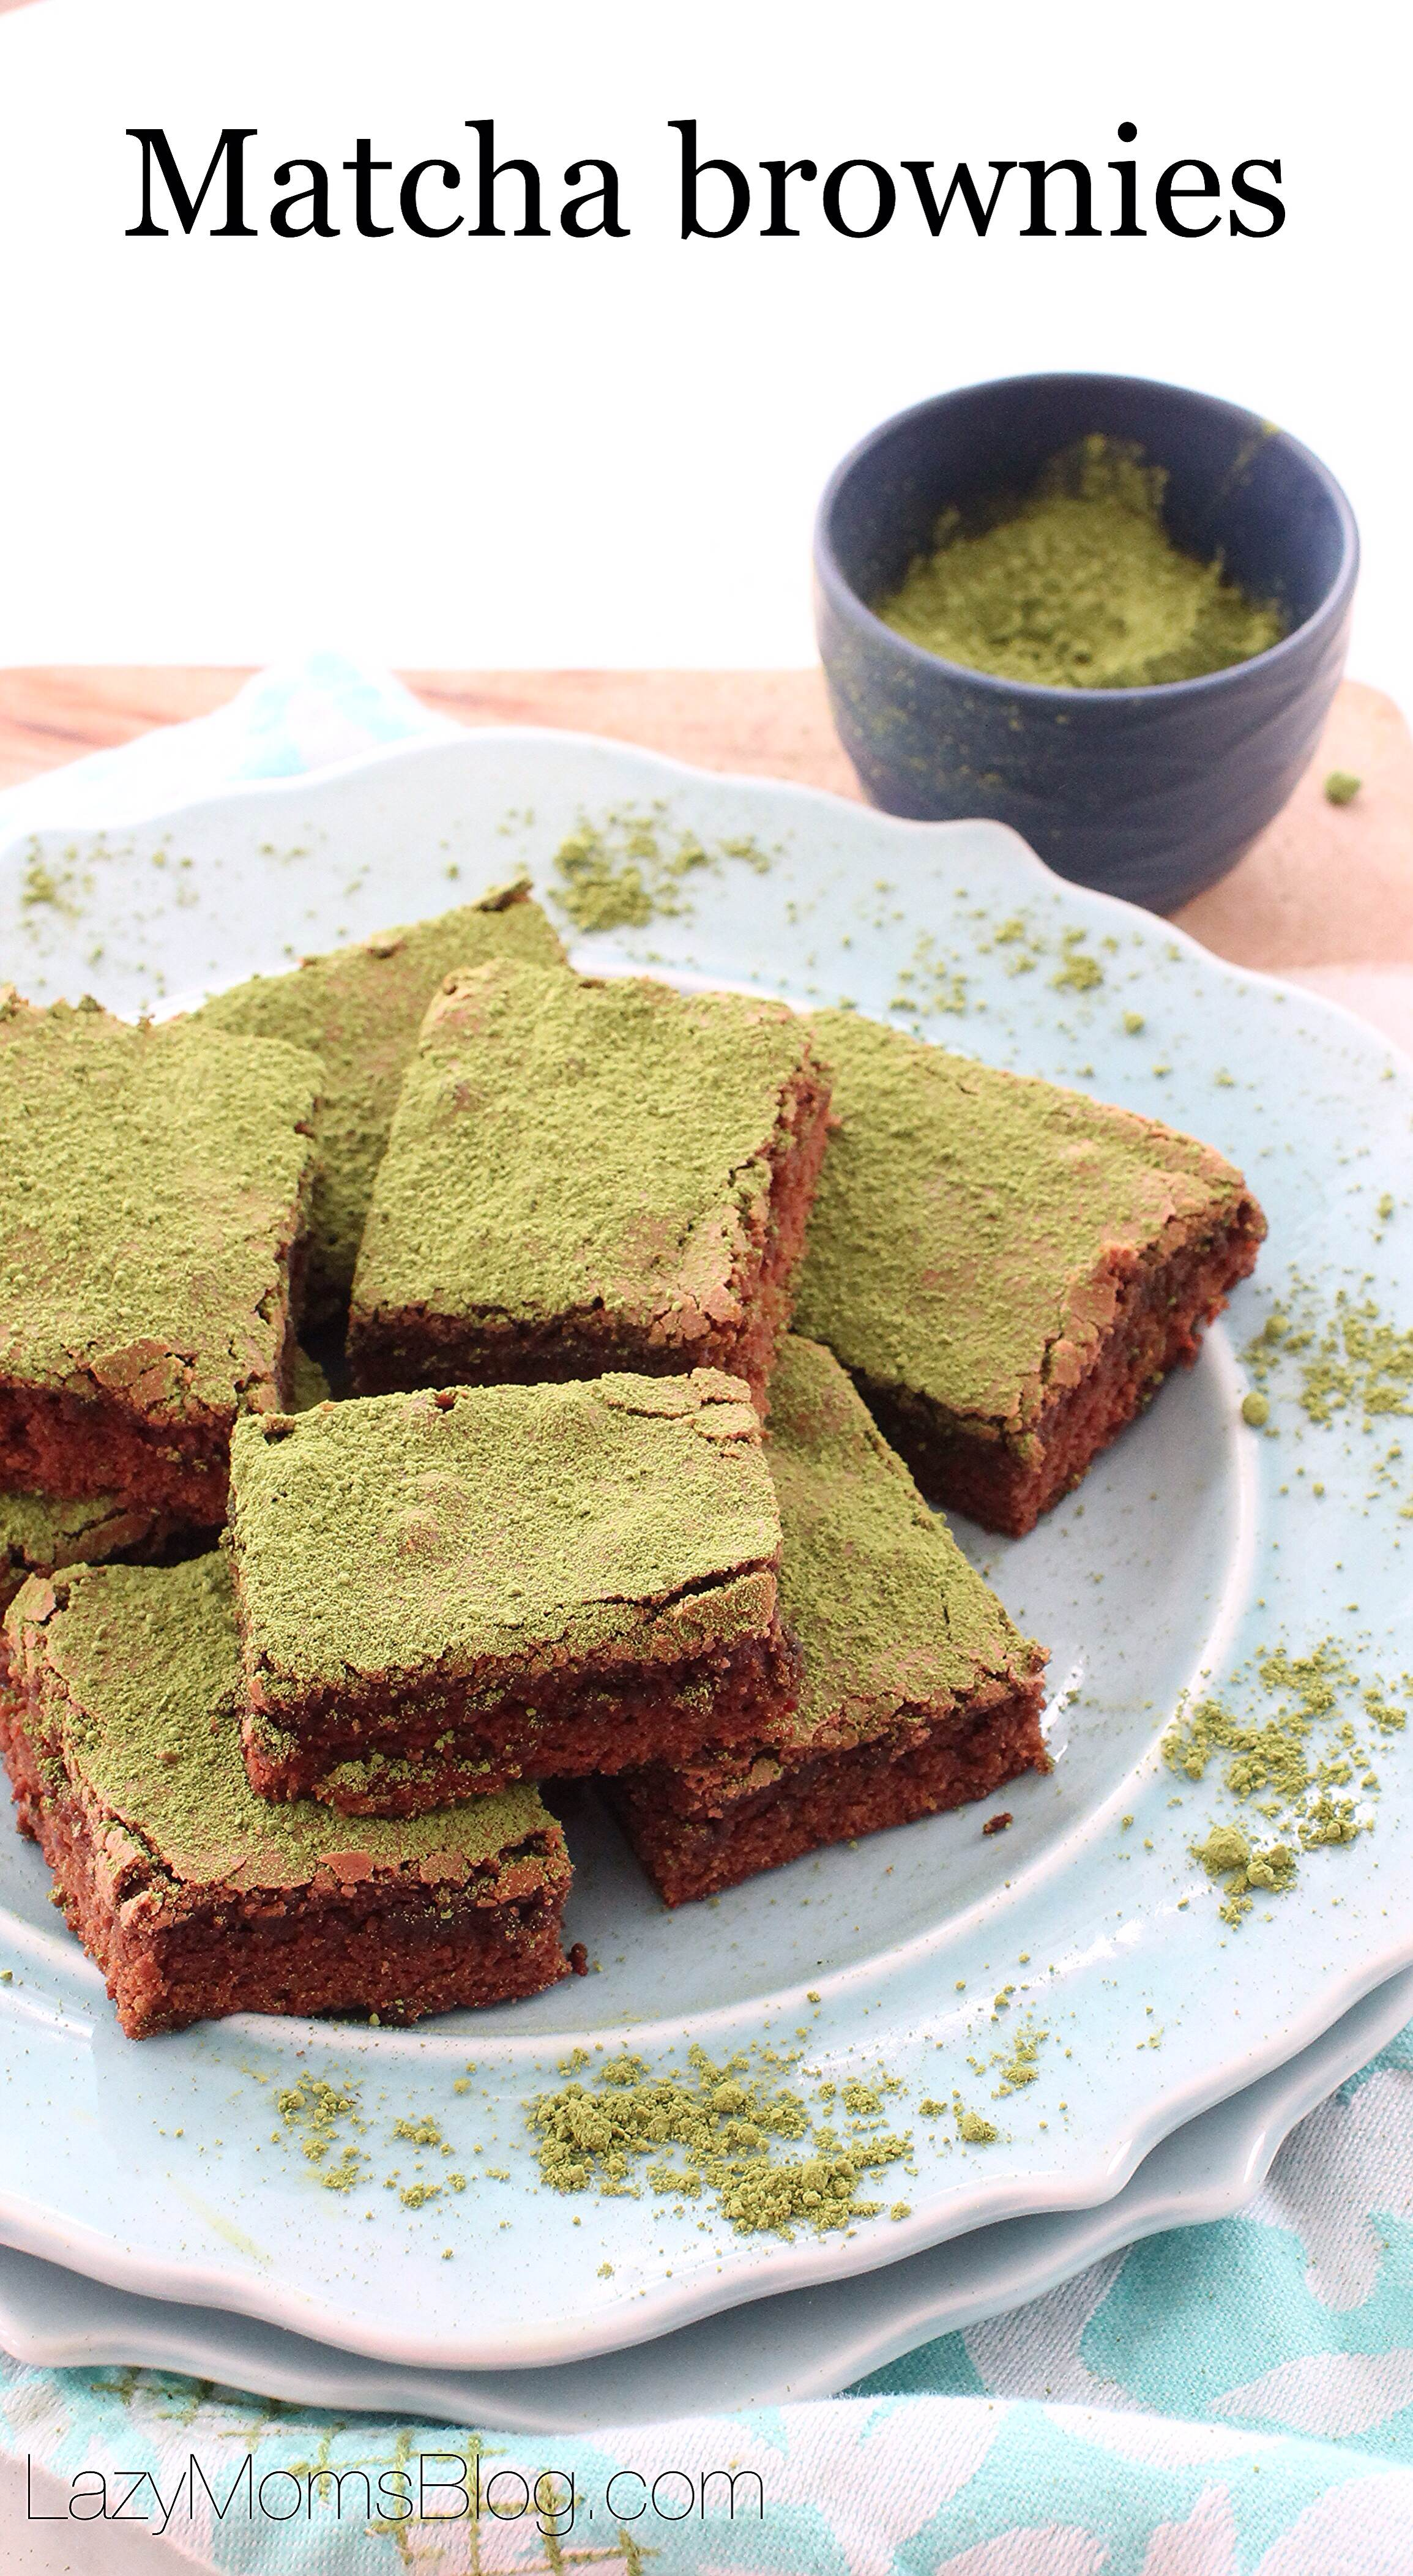 easy and delicious, matcha brownies that are too good not to share!